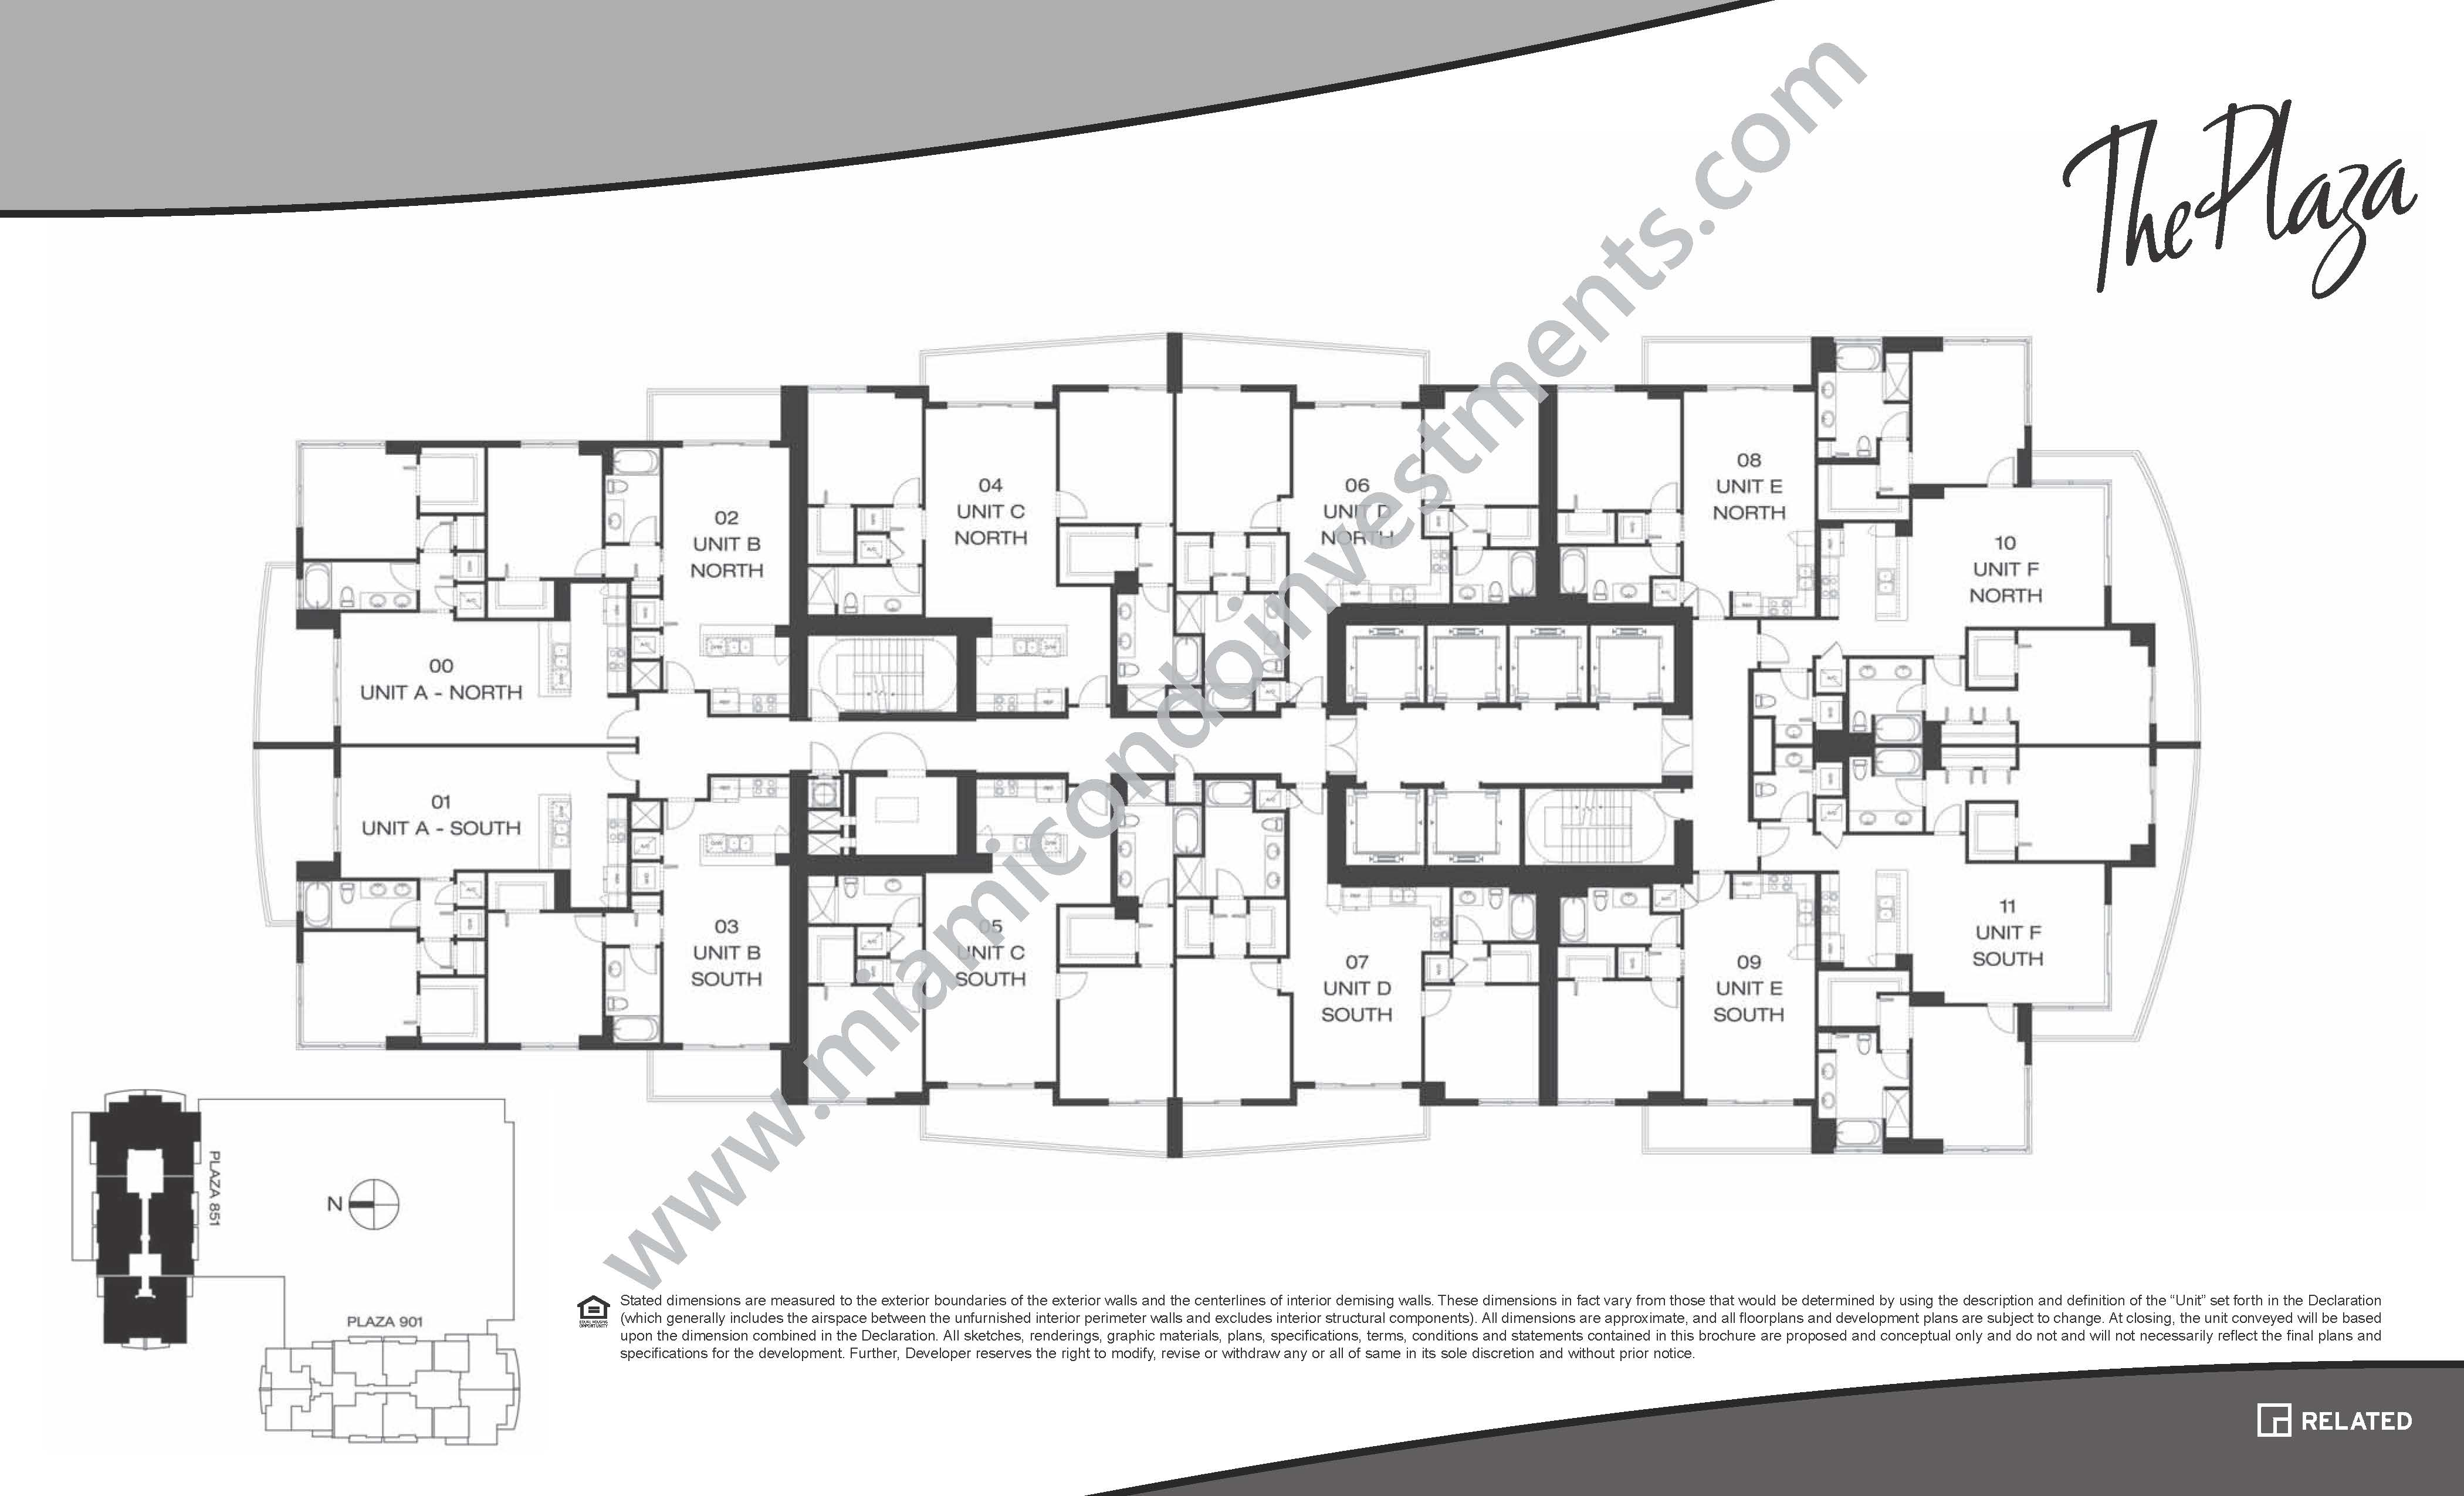 the plaza on brickell condos east tower 950 brickell bay the plaza on brickell east condos site plan